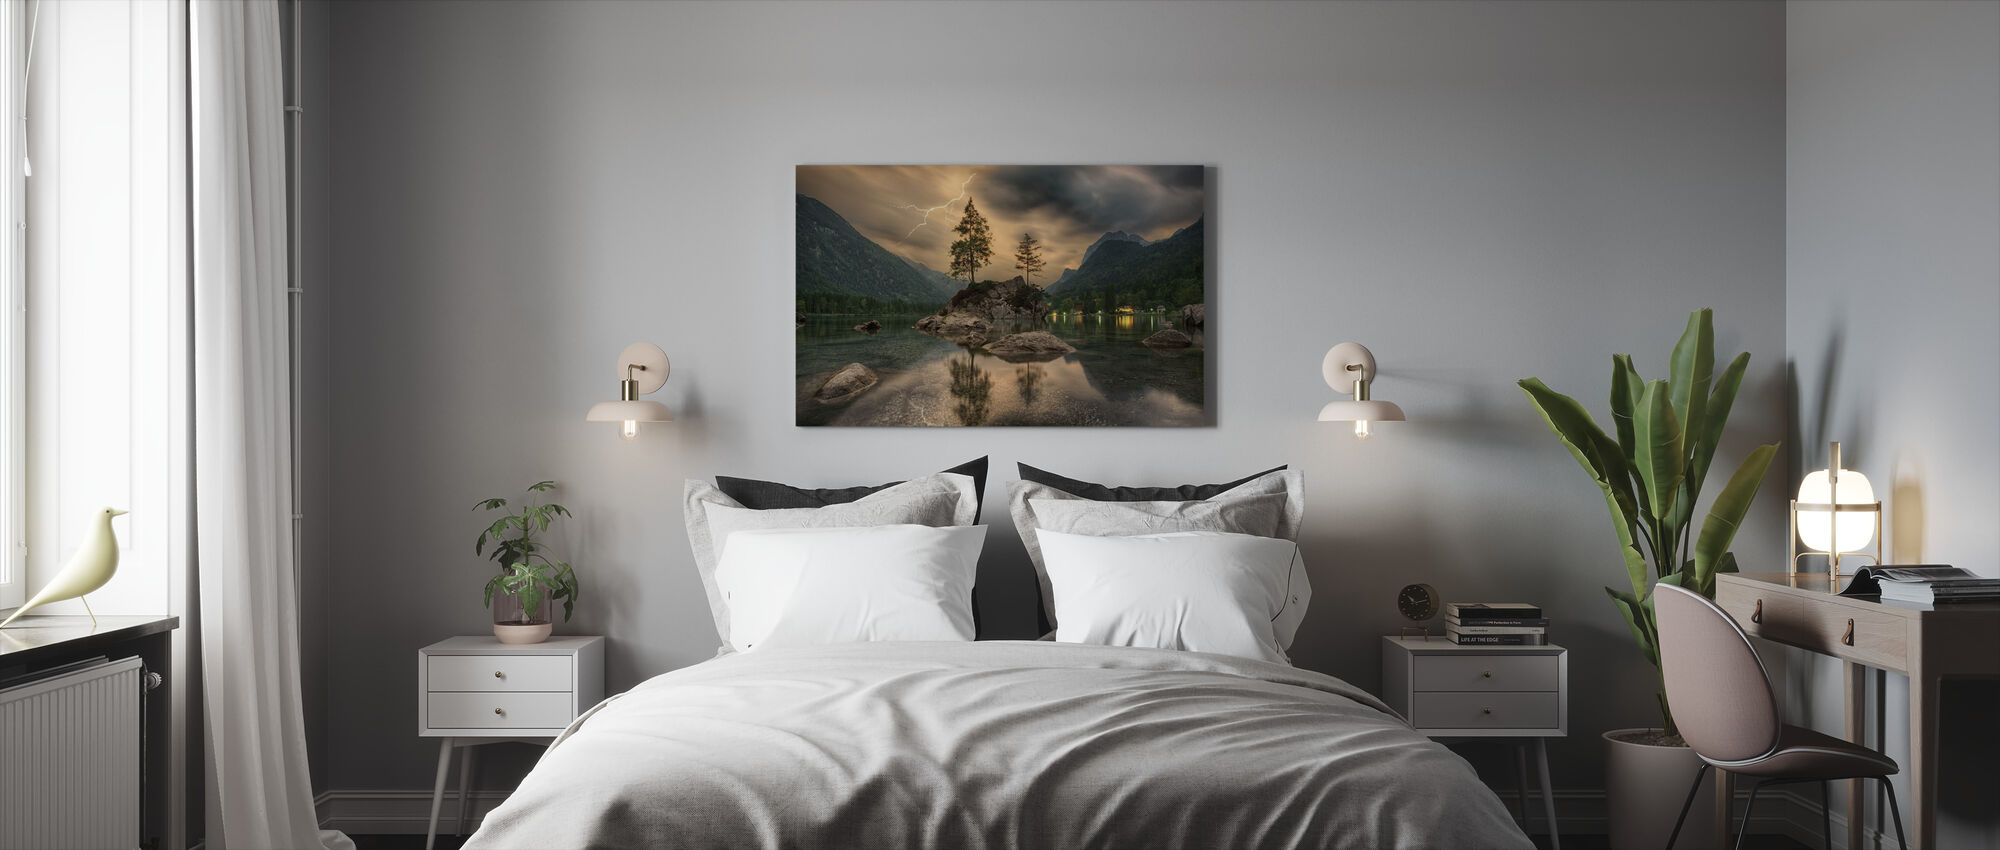 Lake Tree - Canvas print - Bedroom